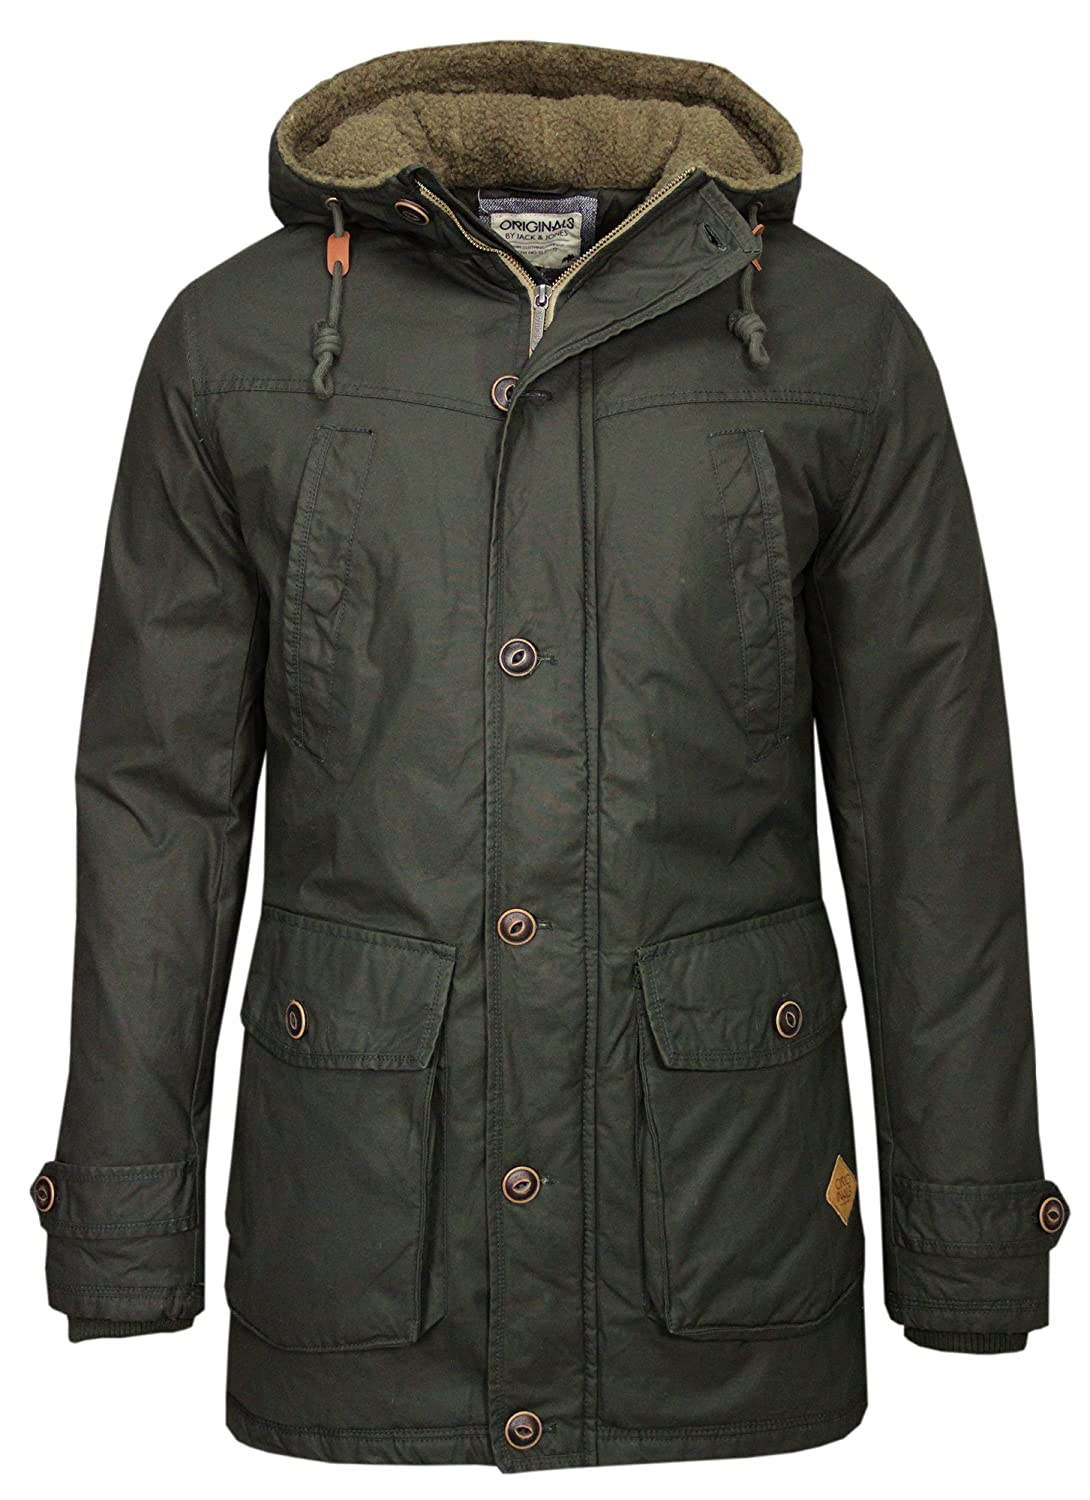 JACK & JONES JACKE COUNTRY PARKA bestellen